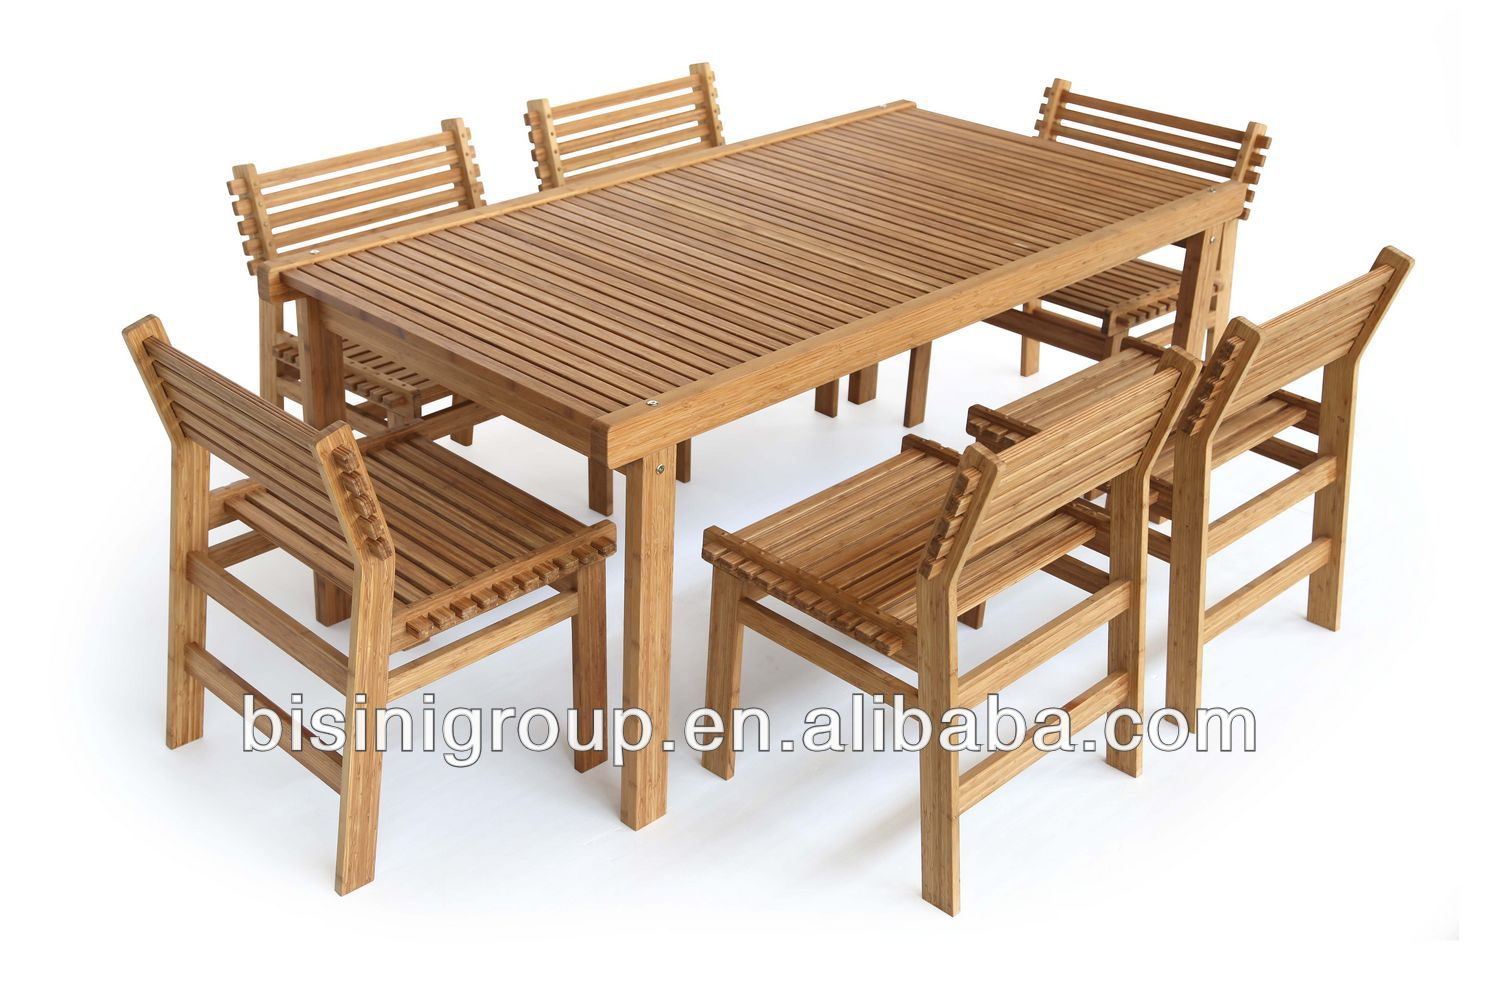 2013 Bamboo Furniture bf10 w23 Buy Bamboo Furniture  : 785314981602 from alibaba.com size 1500 x 1000 jpeg 187kB